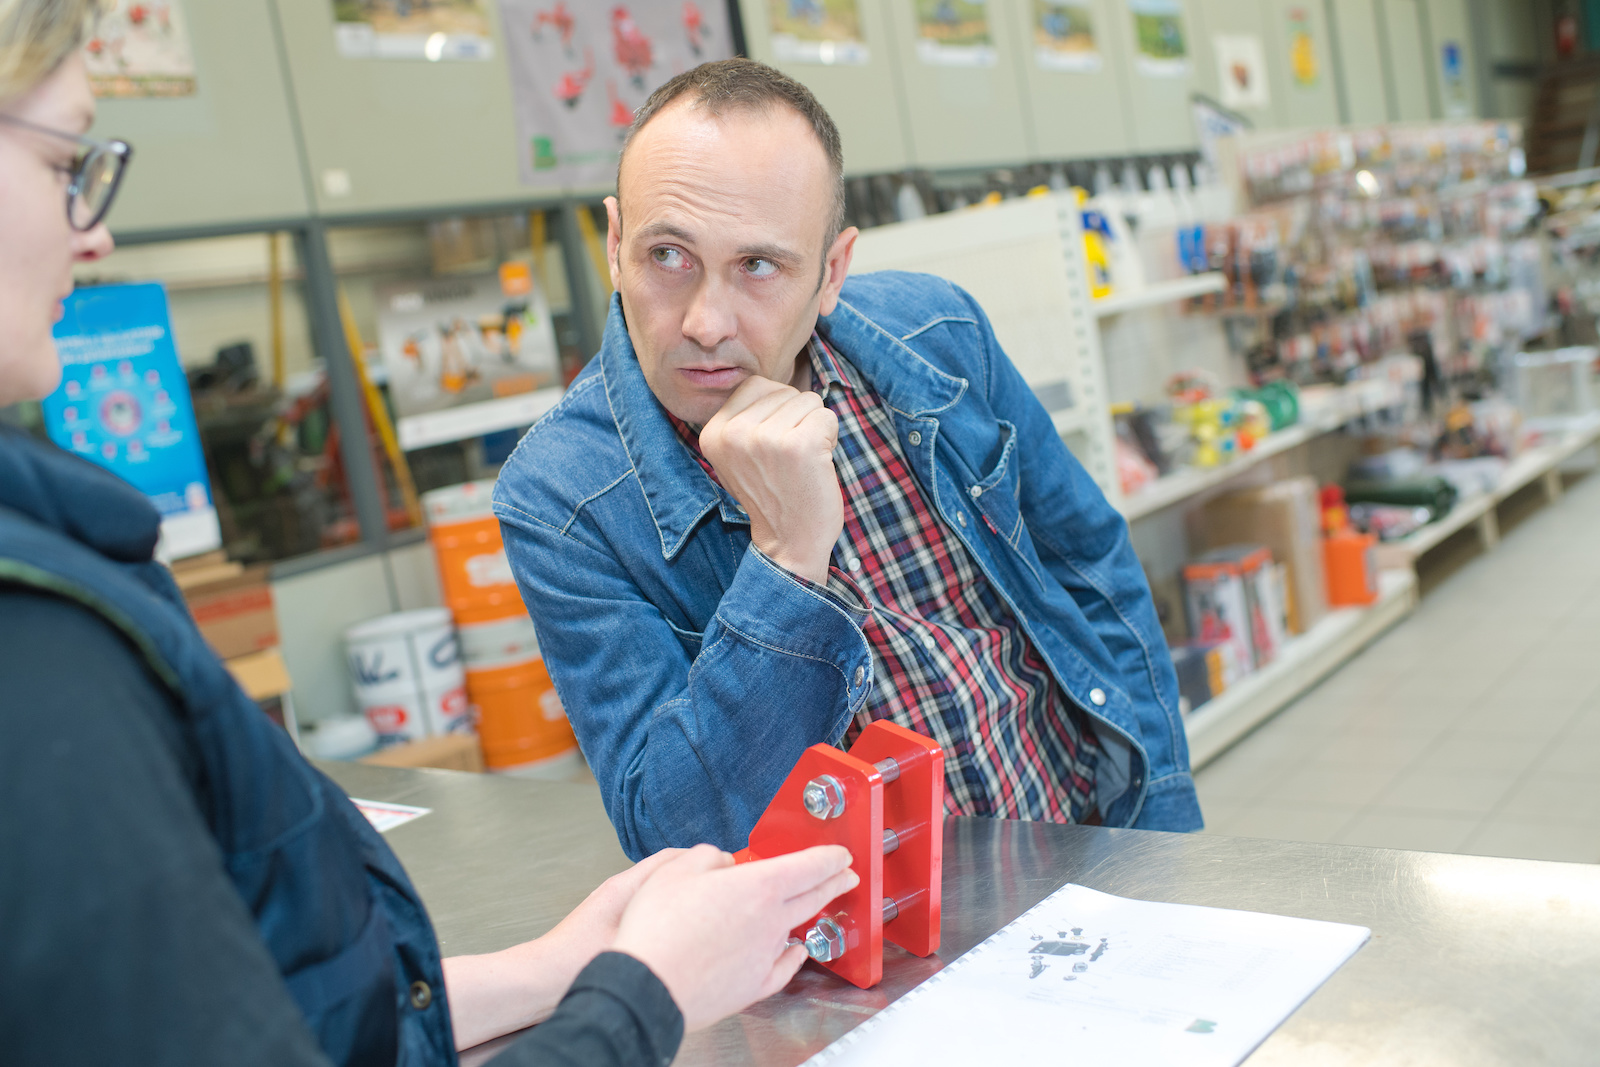 Shop assistant in conversation with skeptical customer